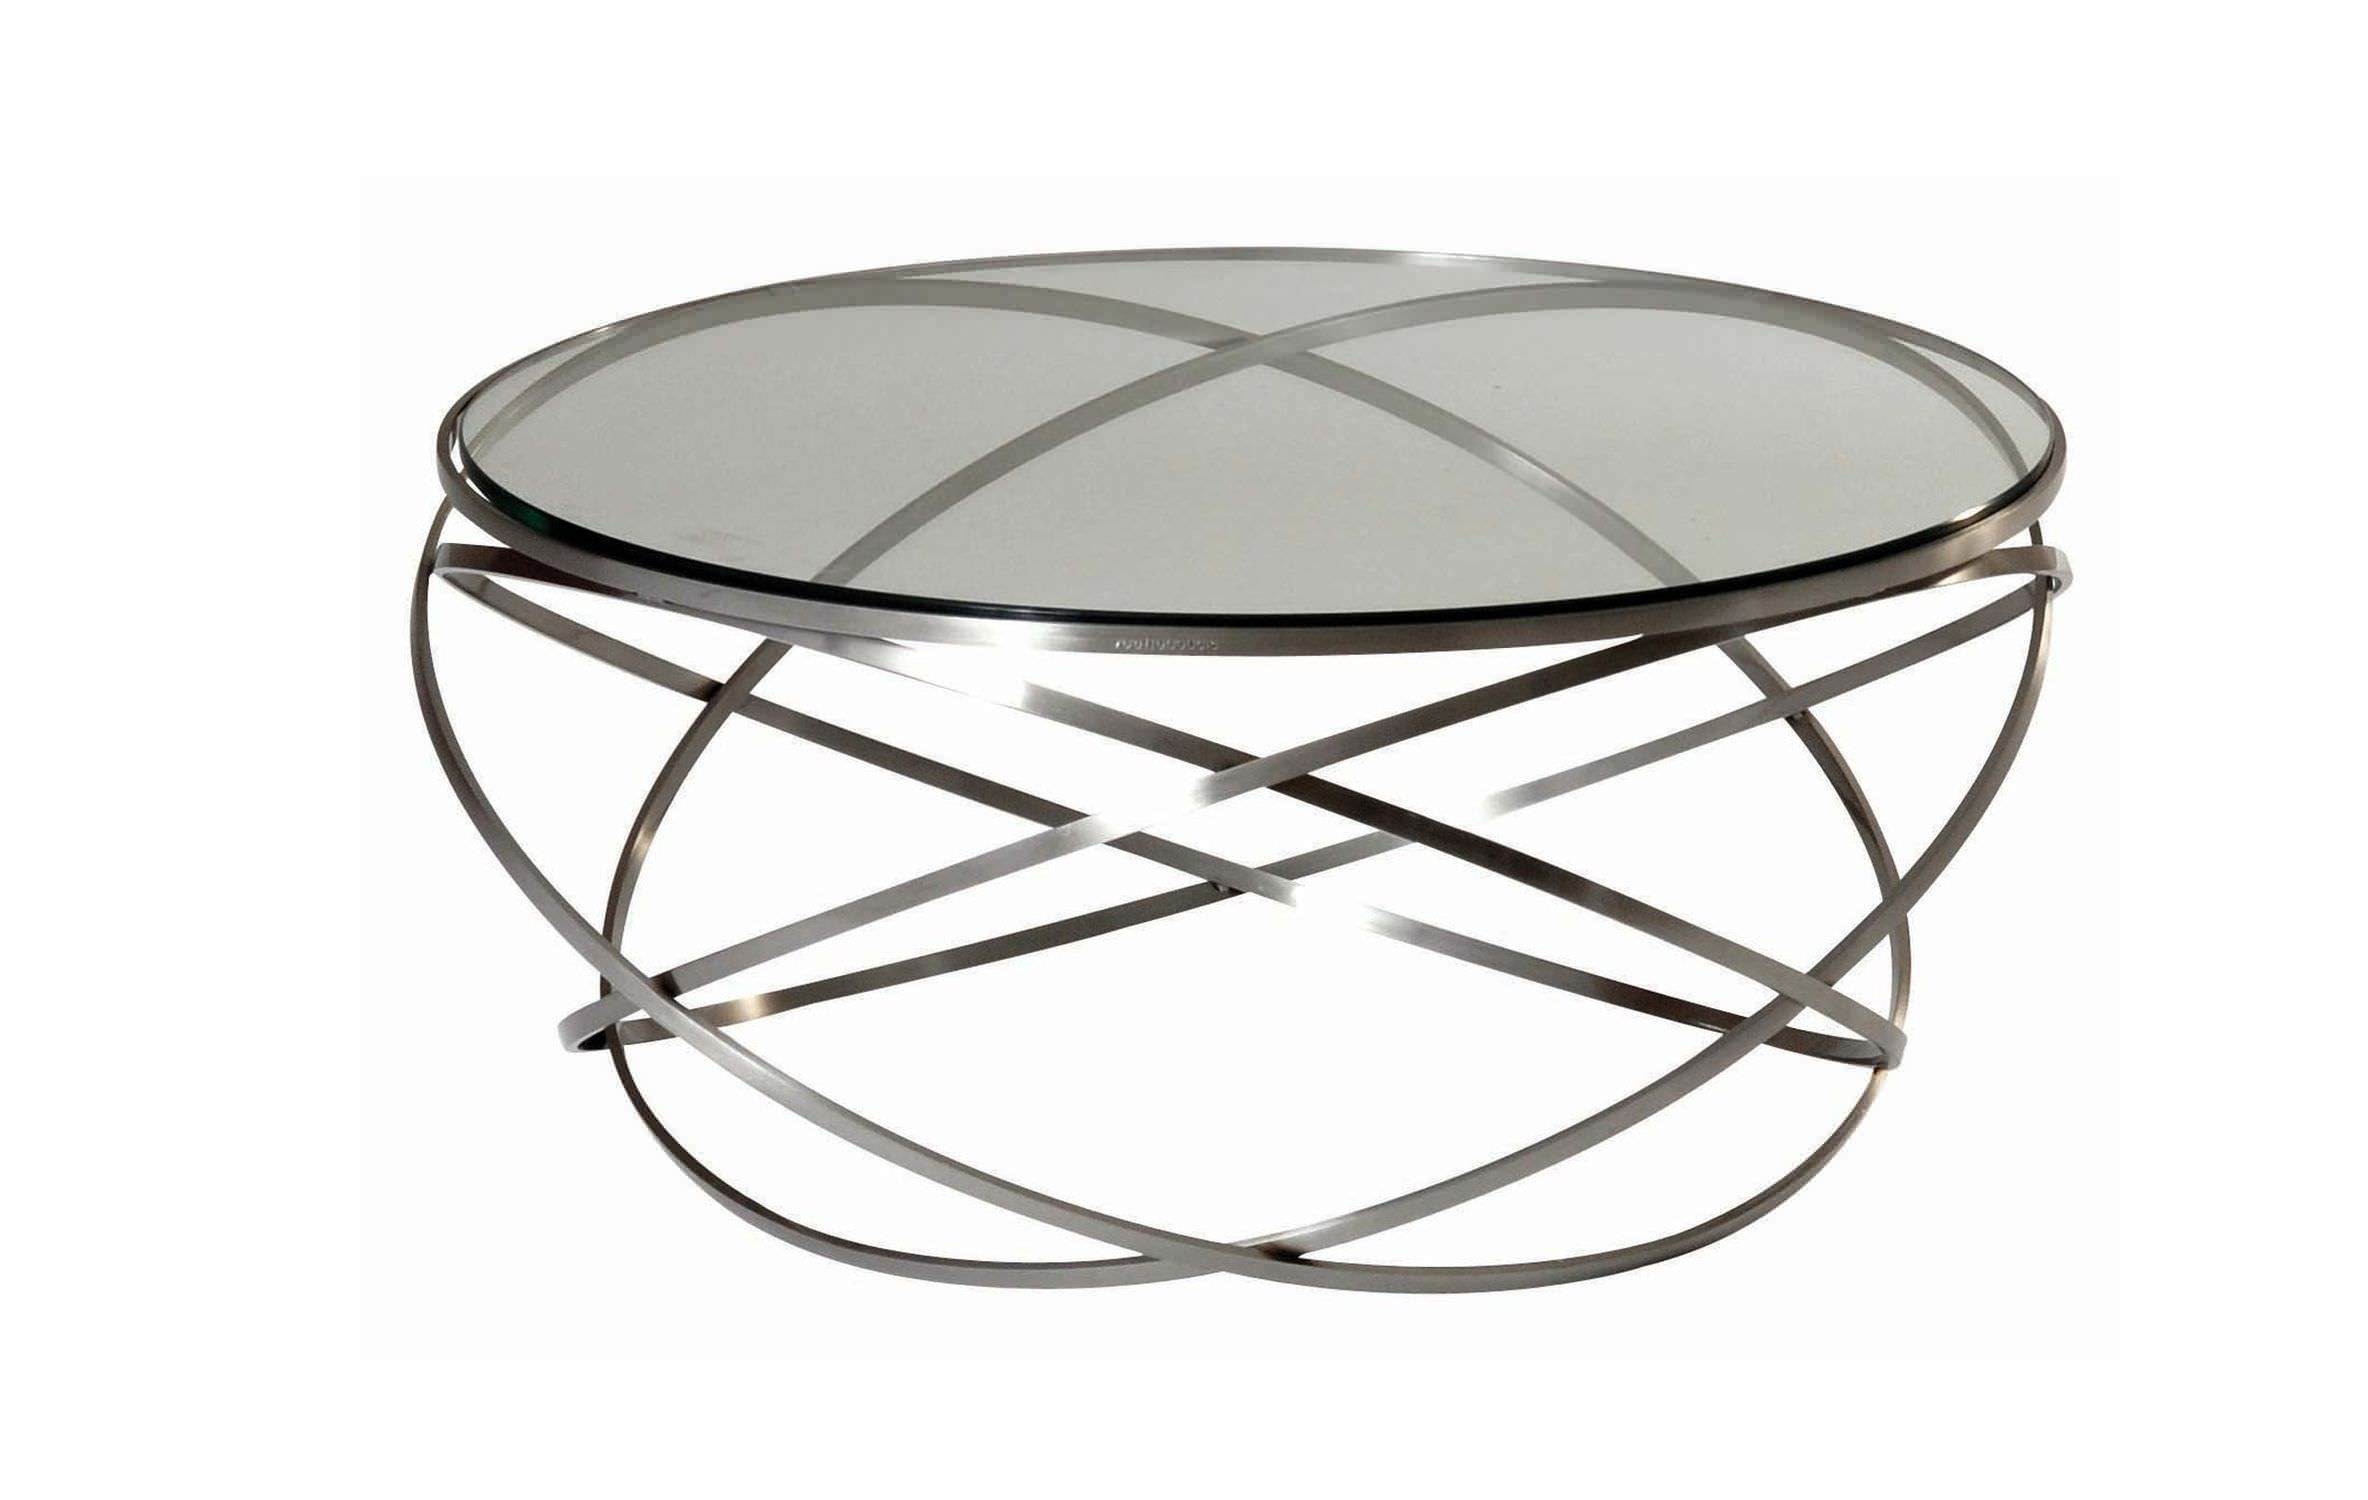 Table basse ronde en verre design id es de d coration int rieure french d - Table basse ronde en verre design ...